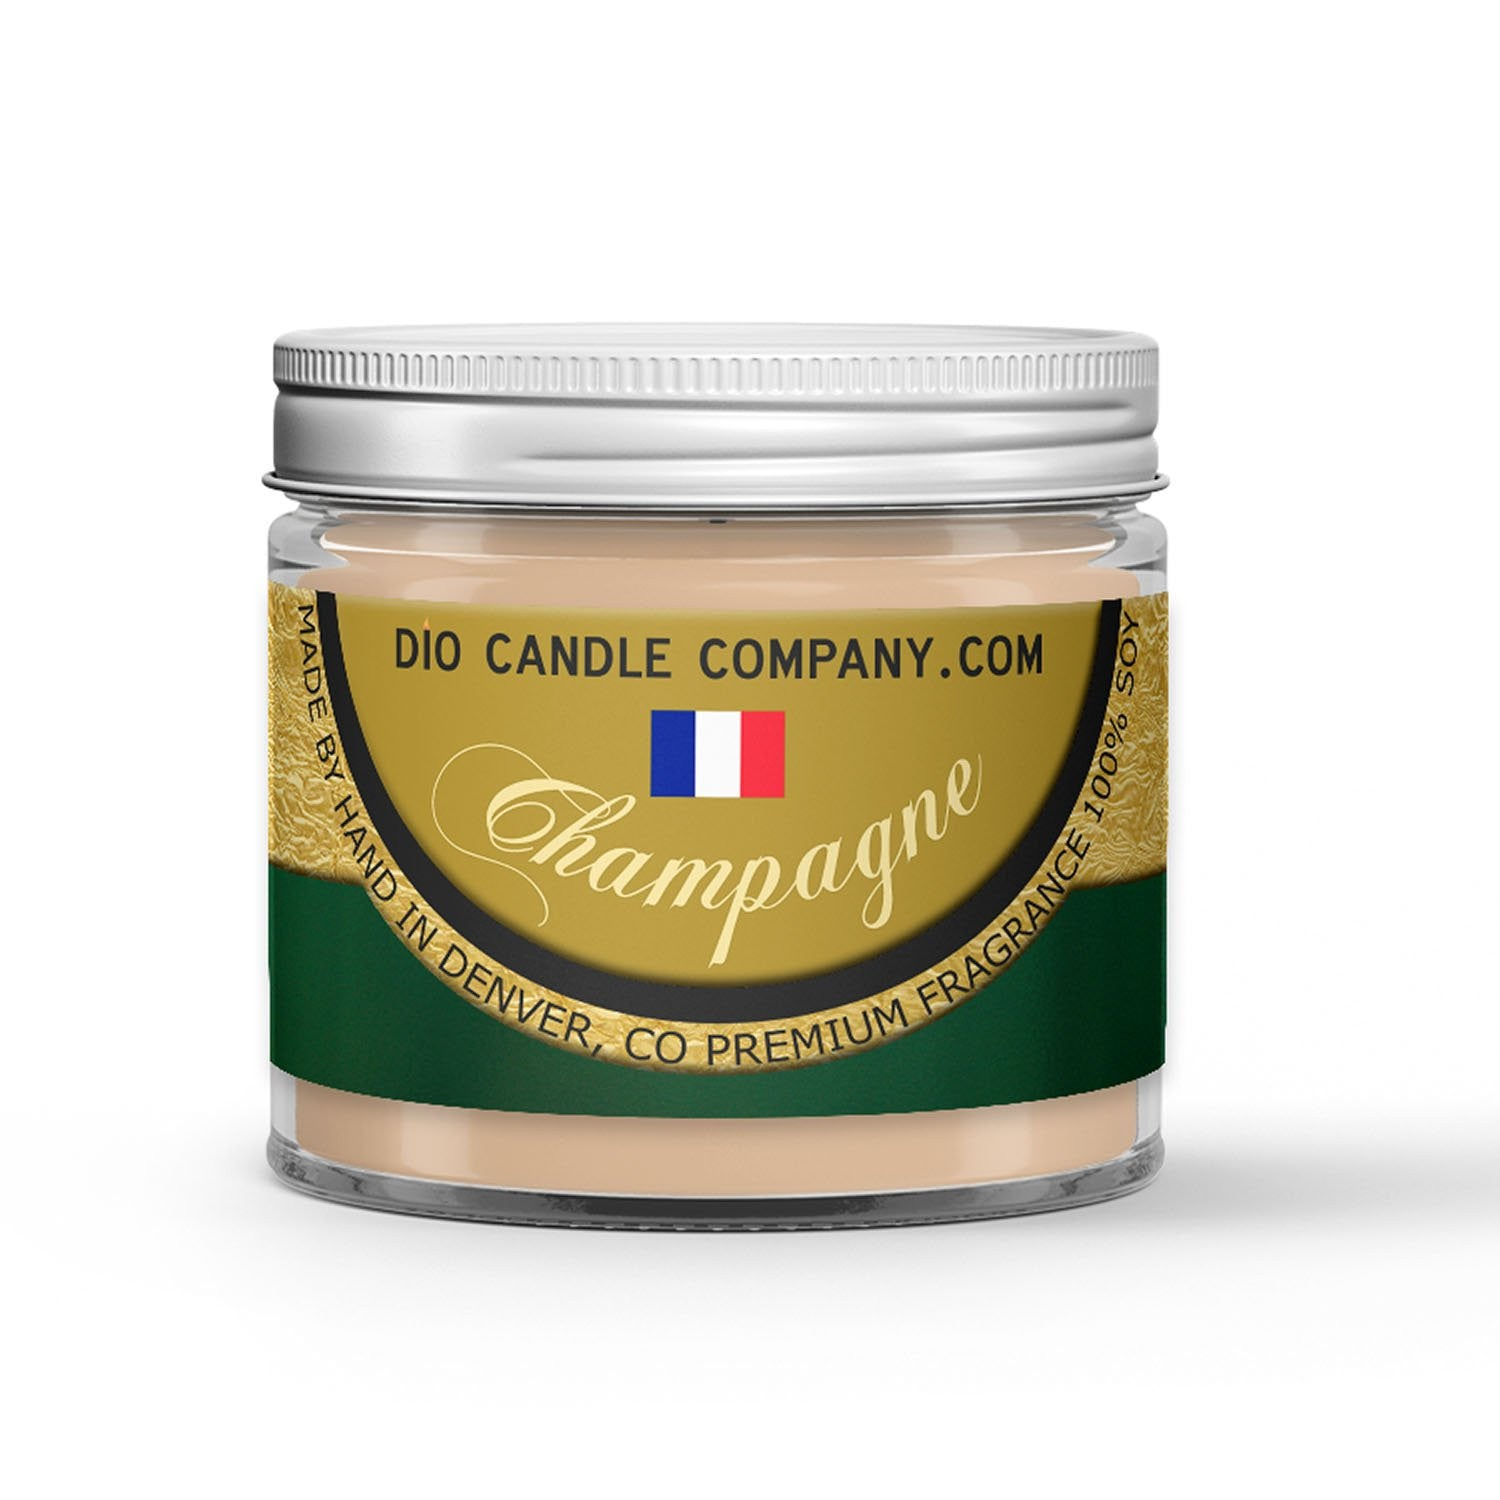 French Champagne Candle - Sparkling White Wine - Hint of Strawberry - 1oz Adorable Size Candle® - Dio Candle Company